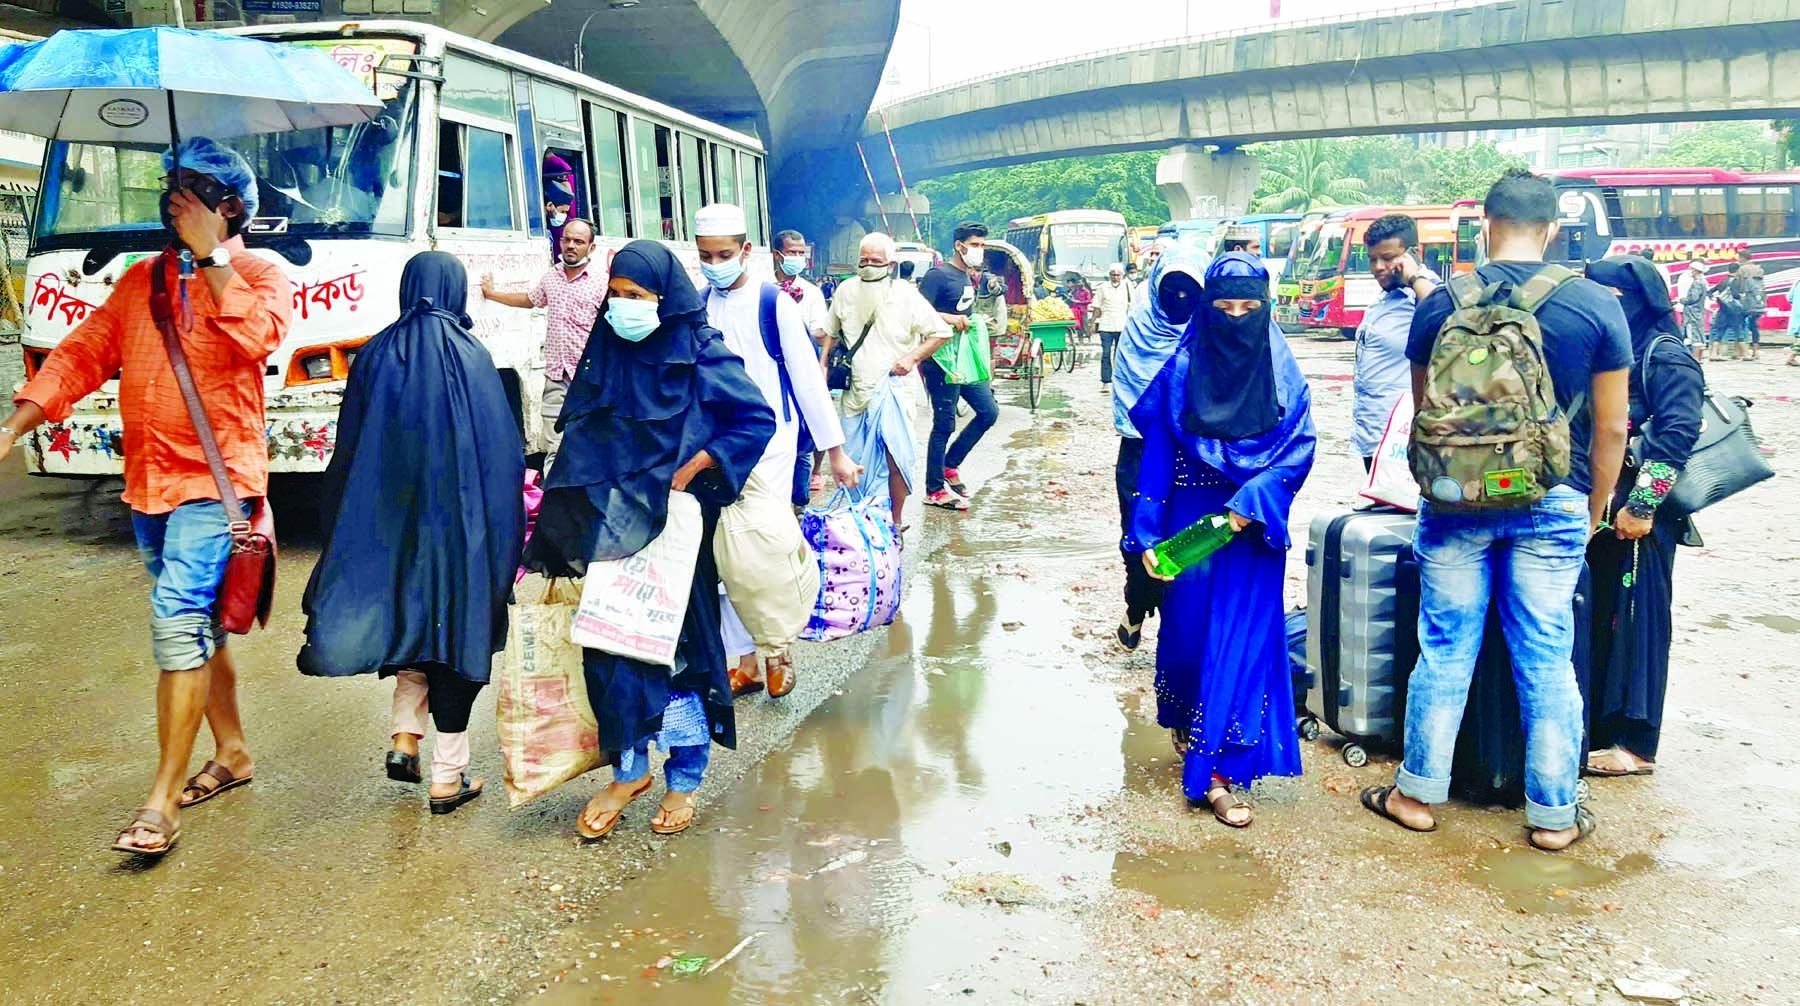 Bus, train, water  transports withheld  People's sufferings know no bounds